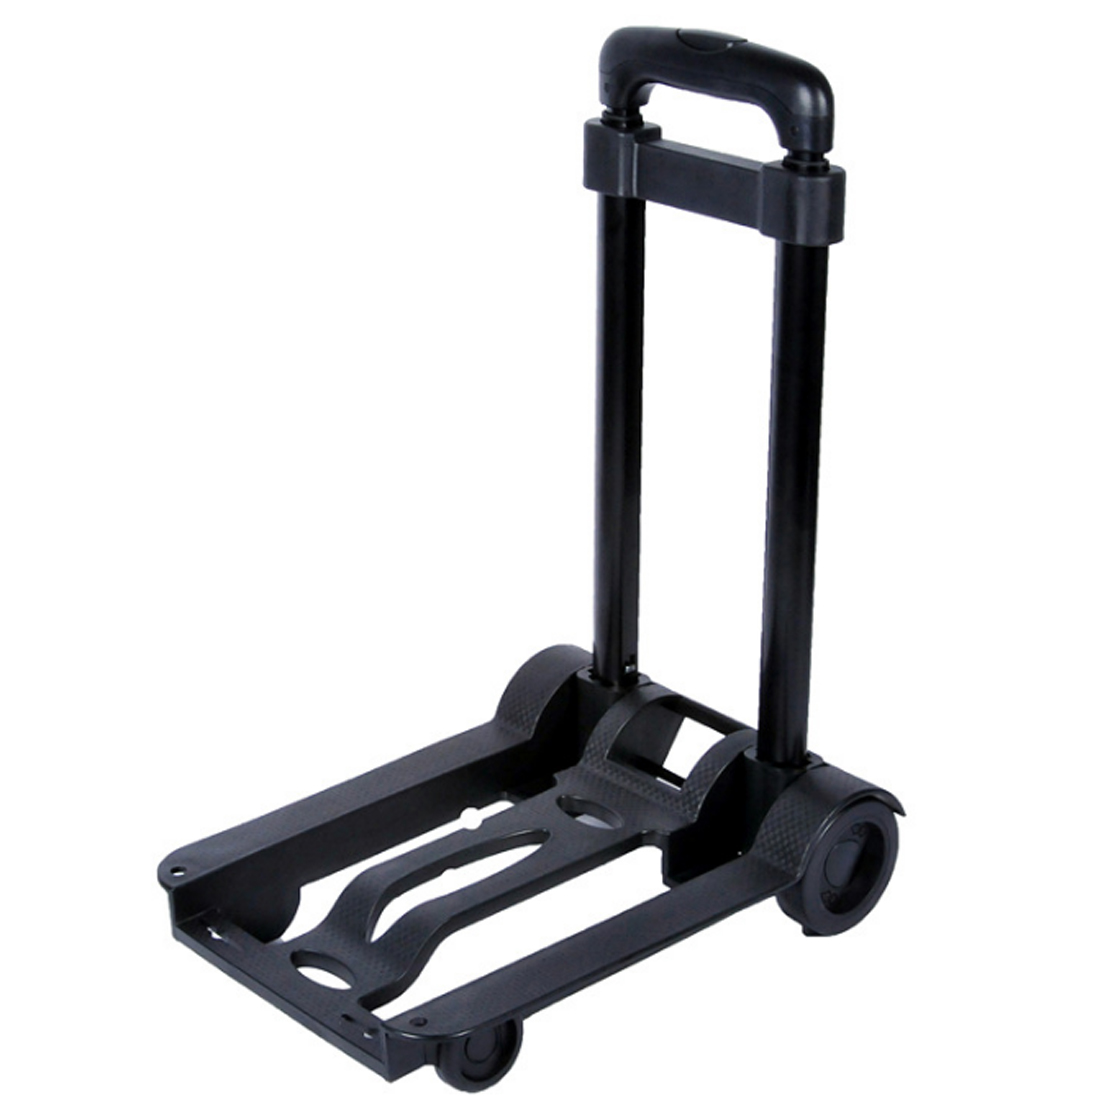 цена на 2018 New Foldable Portable Trolley Wheel Shopping Baggage Cart With Draw-Bar For Shopping Home Travel - Black